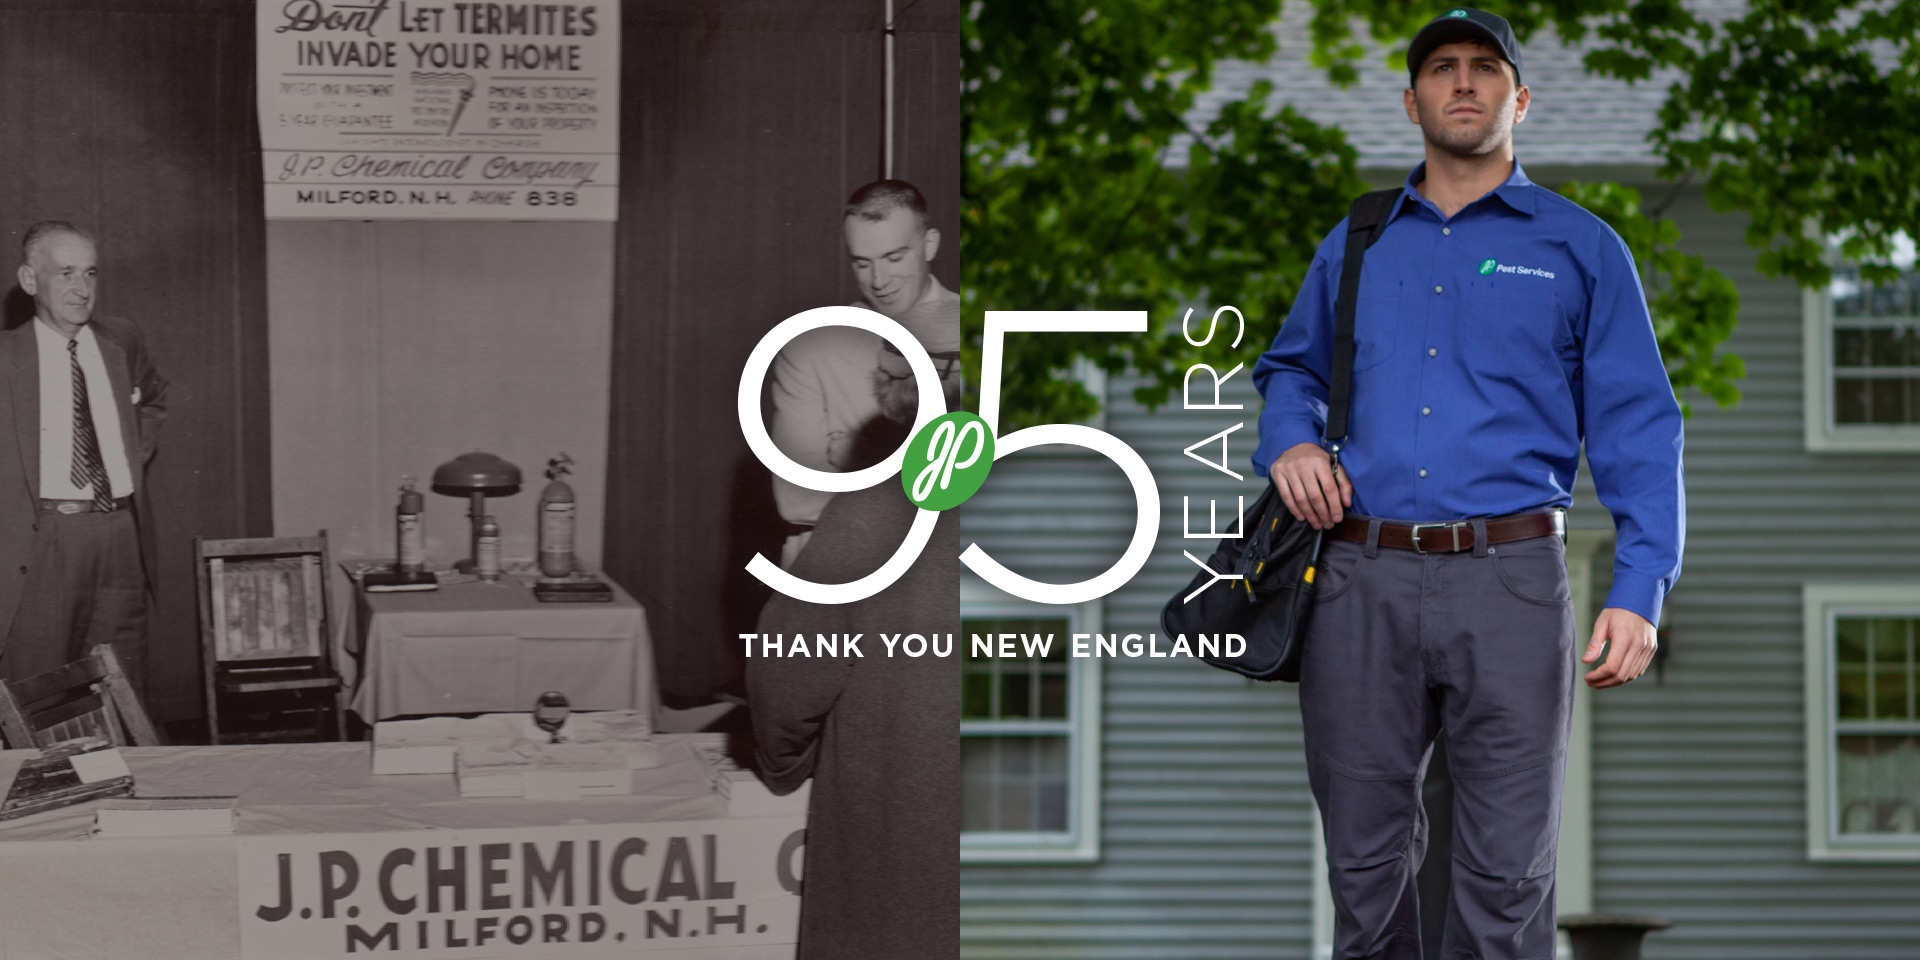 95 Years - Thank You New England